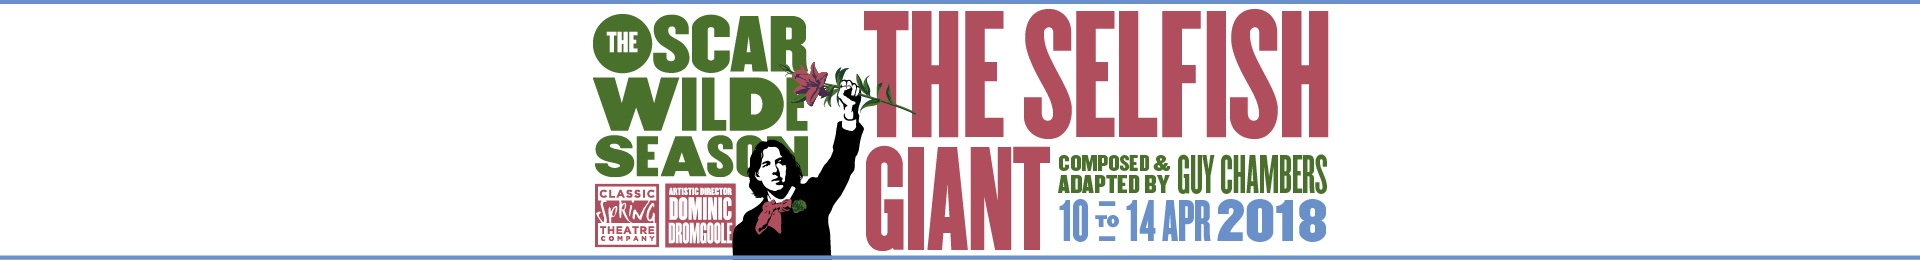 The Selfish Giant banner image